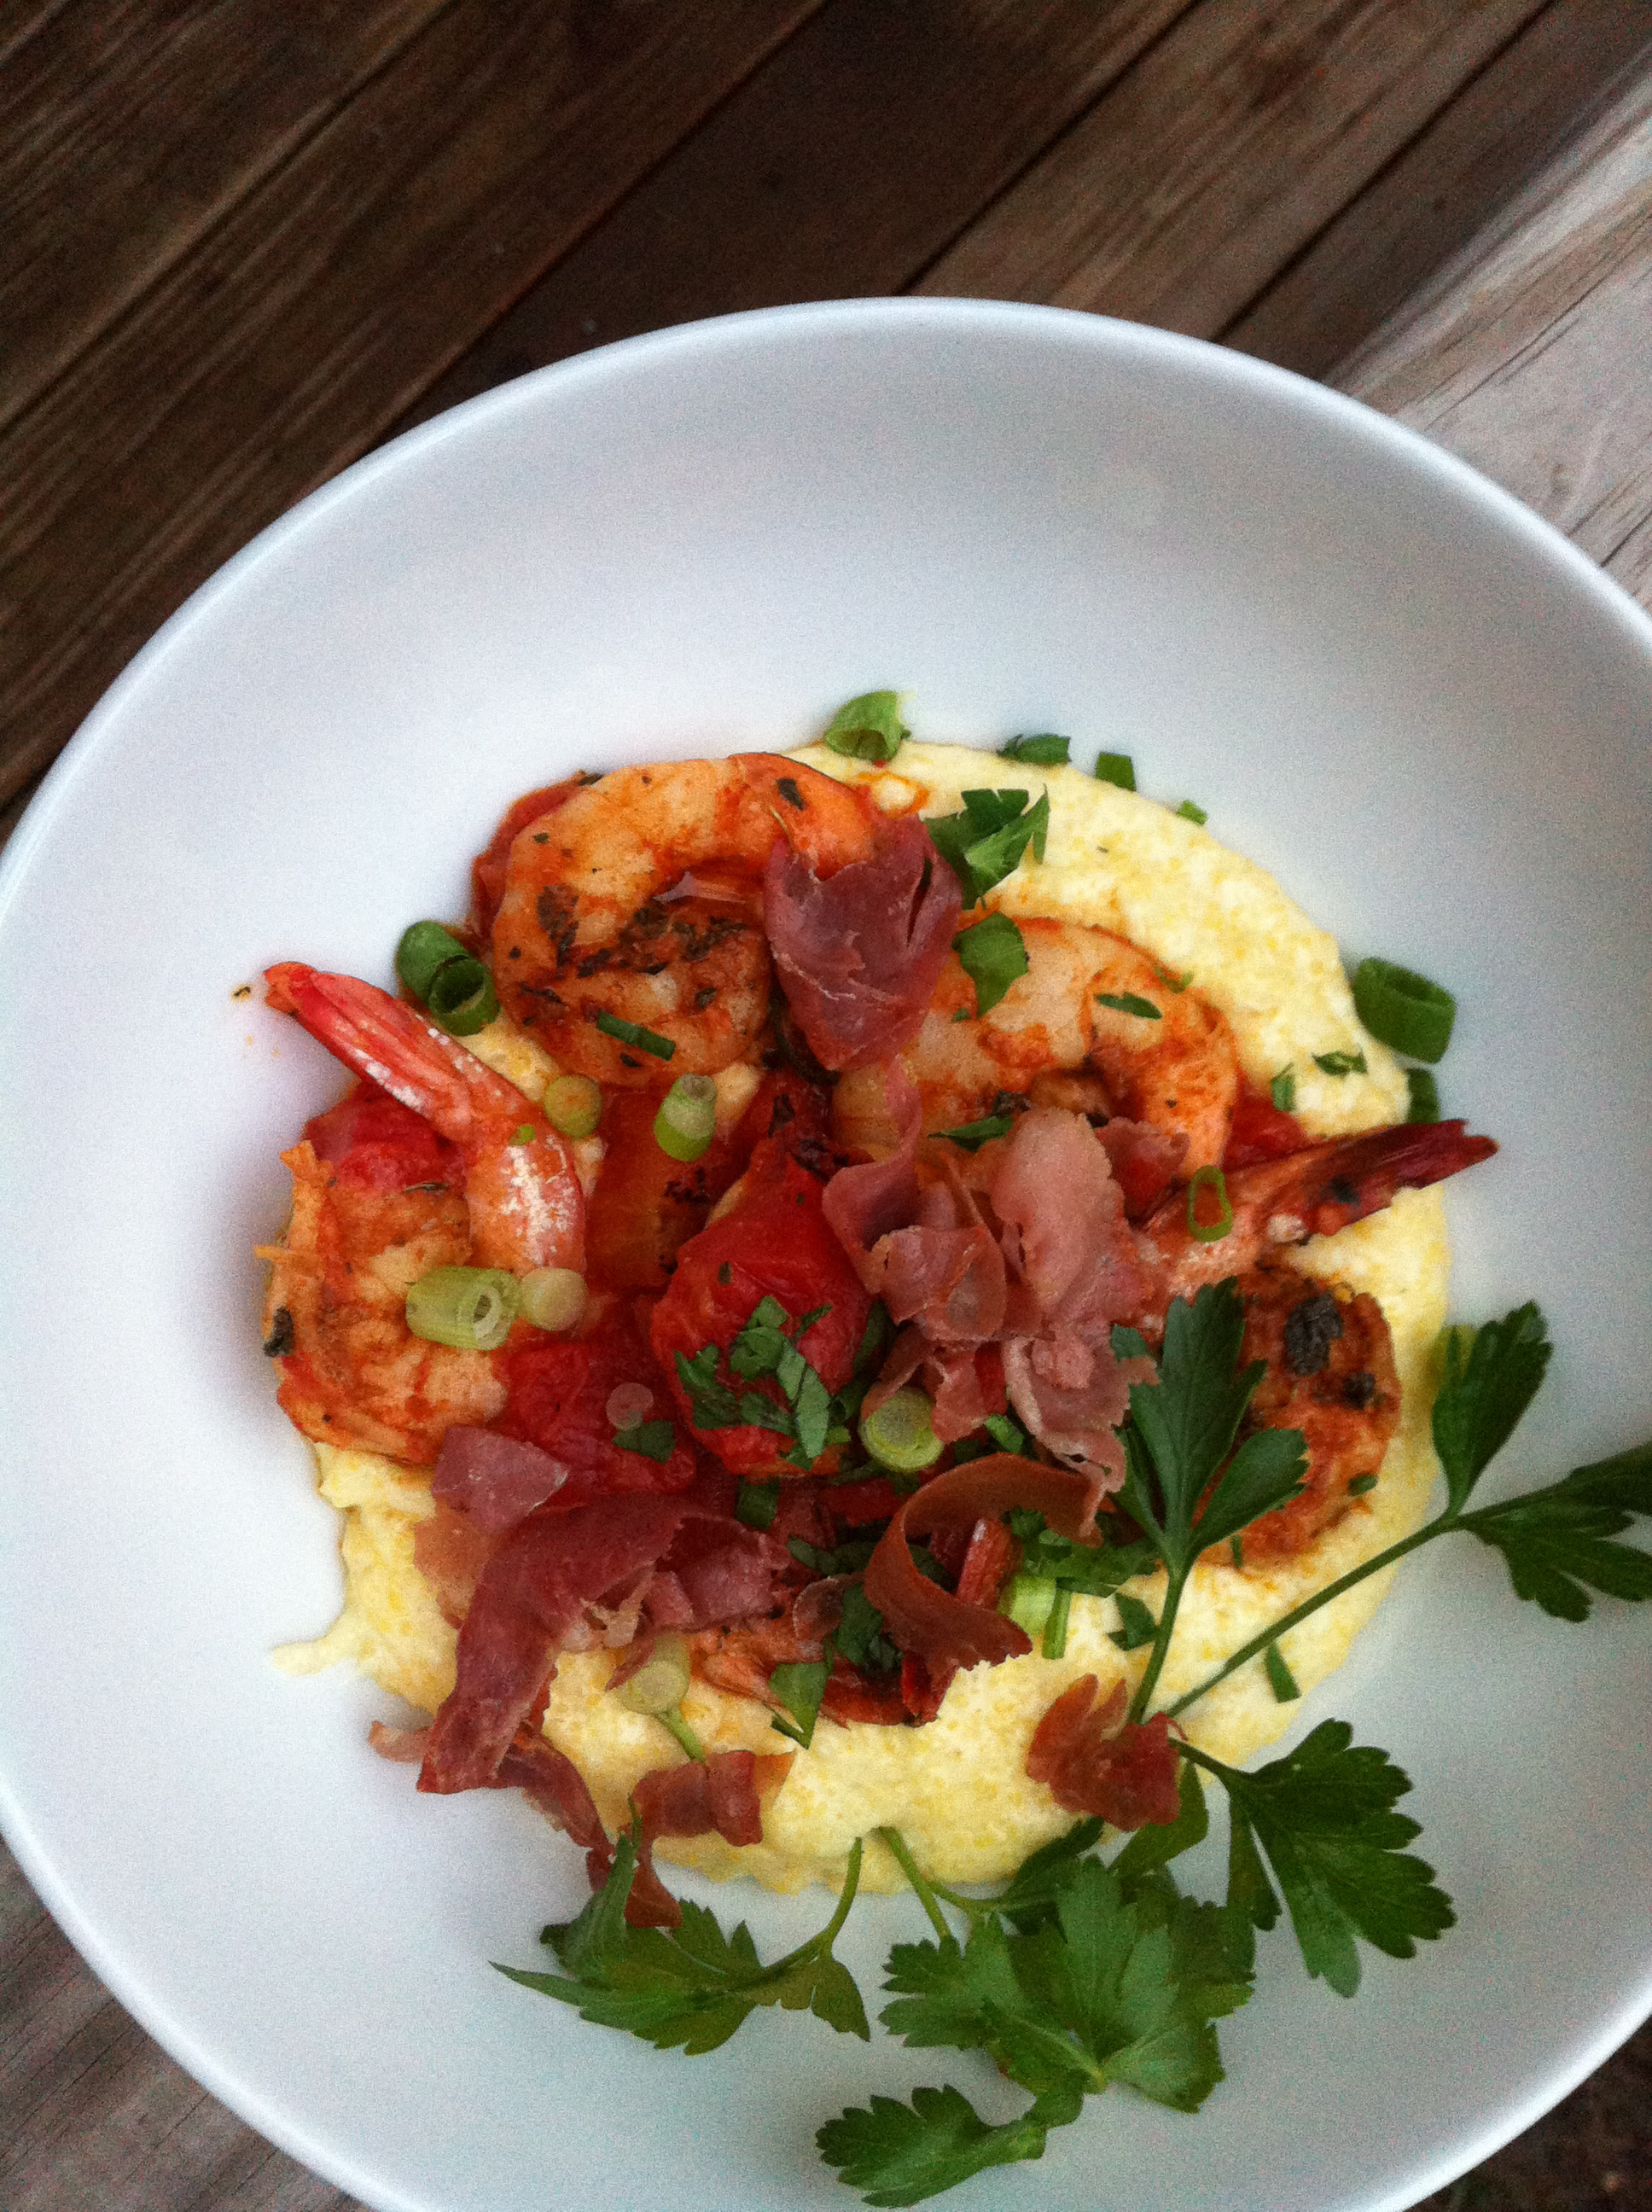 Shrimp and Grits by way of Spain